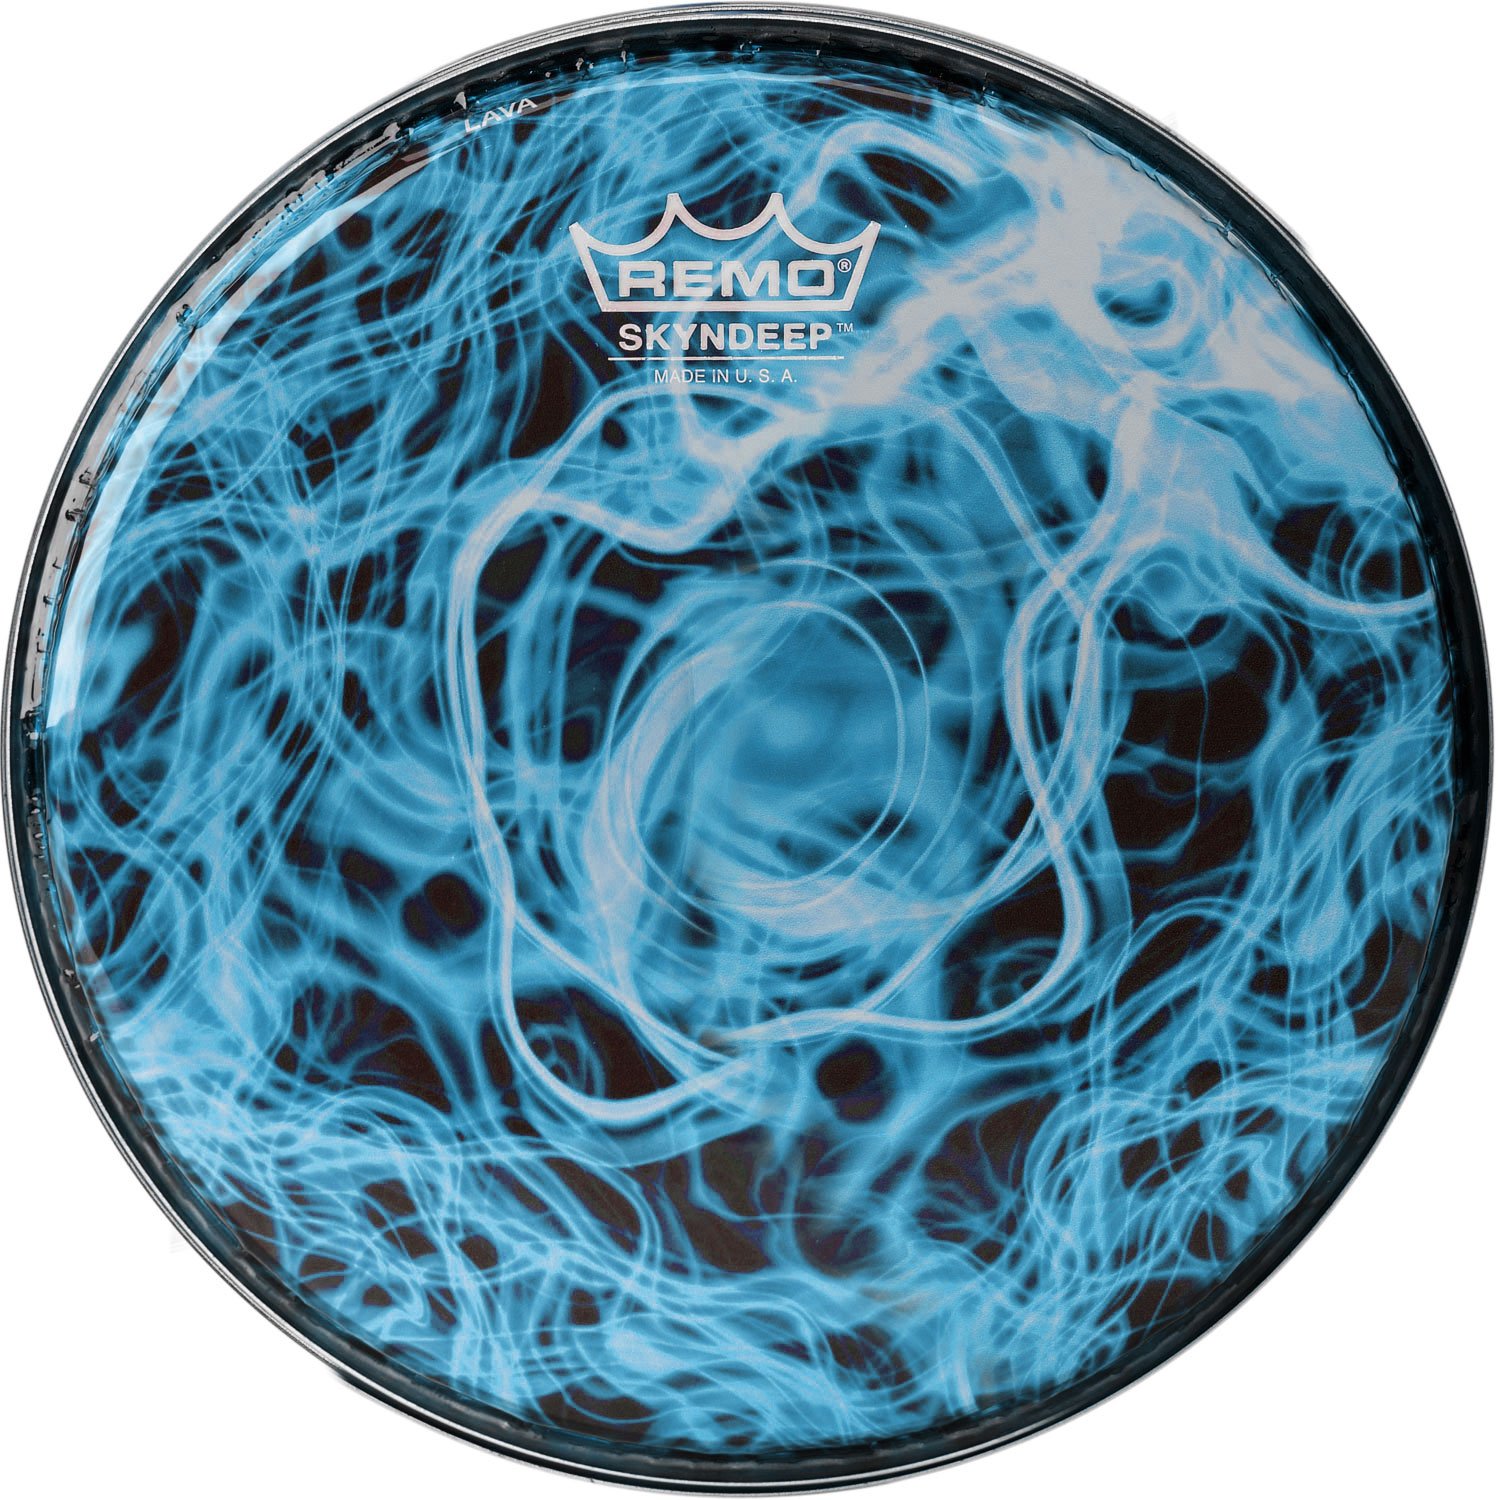 """Remo 10"""" R-Series Skyndeep Doumbek Drum Head with Turquoise Wave Graphic"""